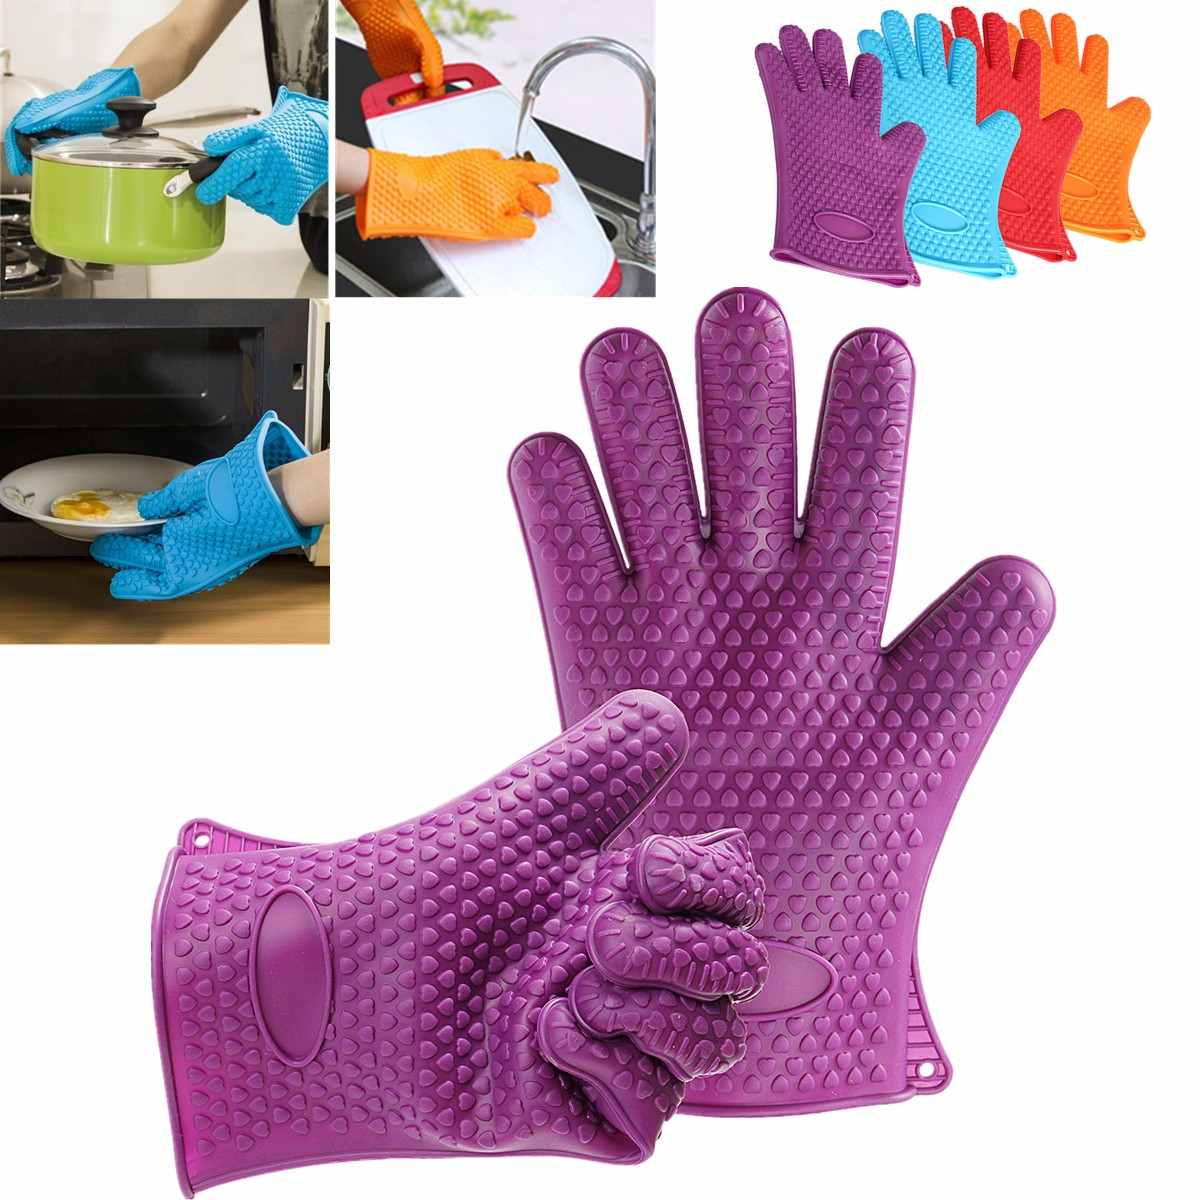 1 Pair food grade Heat Resistant Silicone Kitchen barbecue oven glove Cooking BBQ Grill Glove Oven Mitt Baking Protective gloves брошь telle quelle брошь